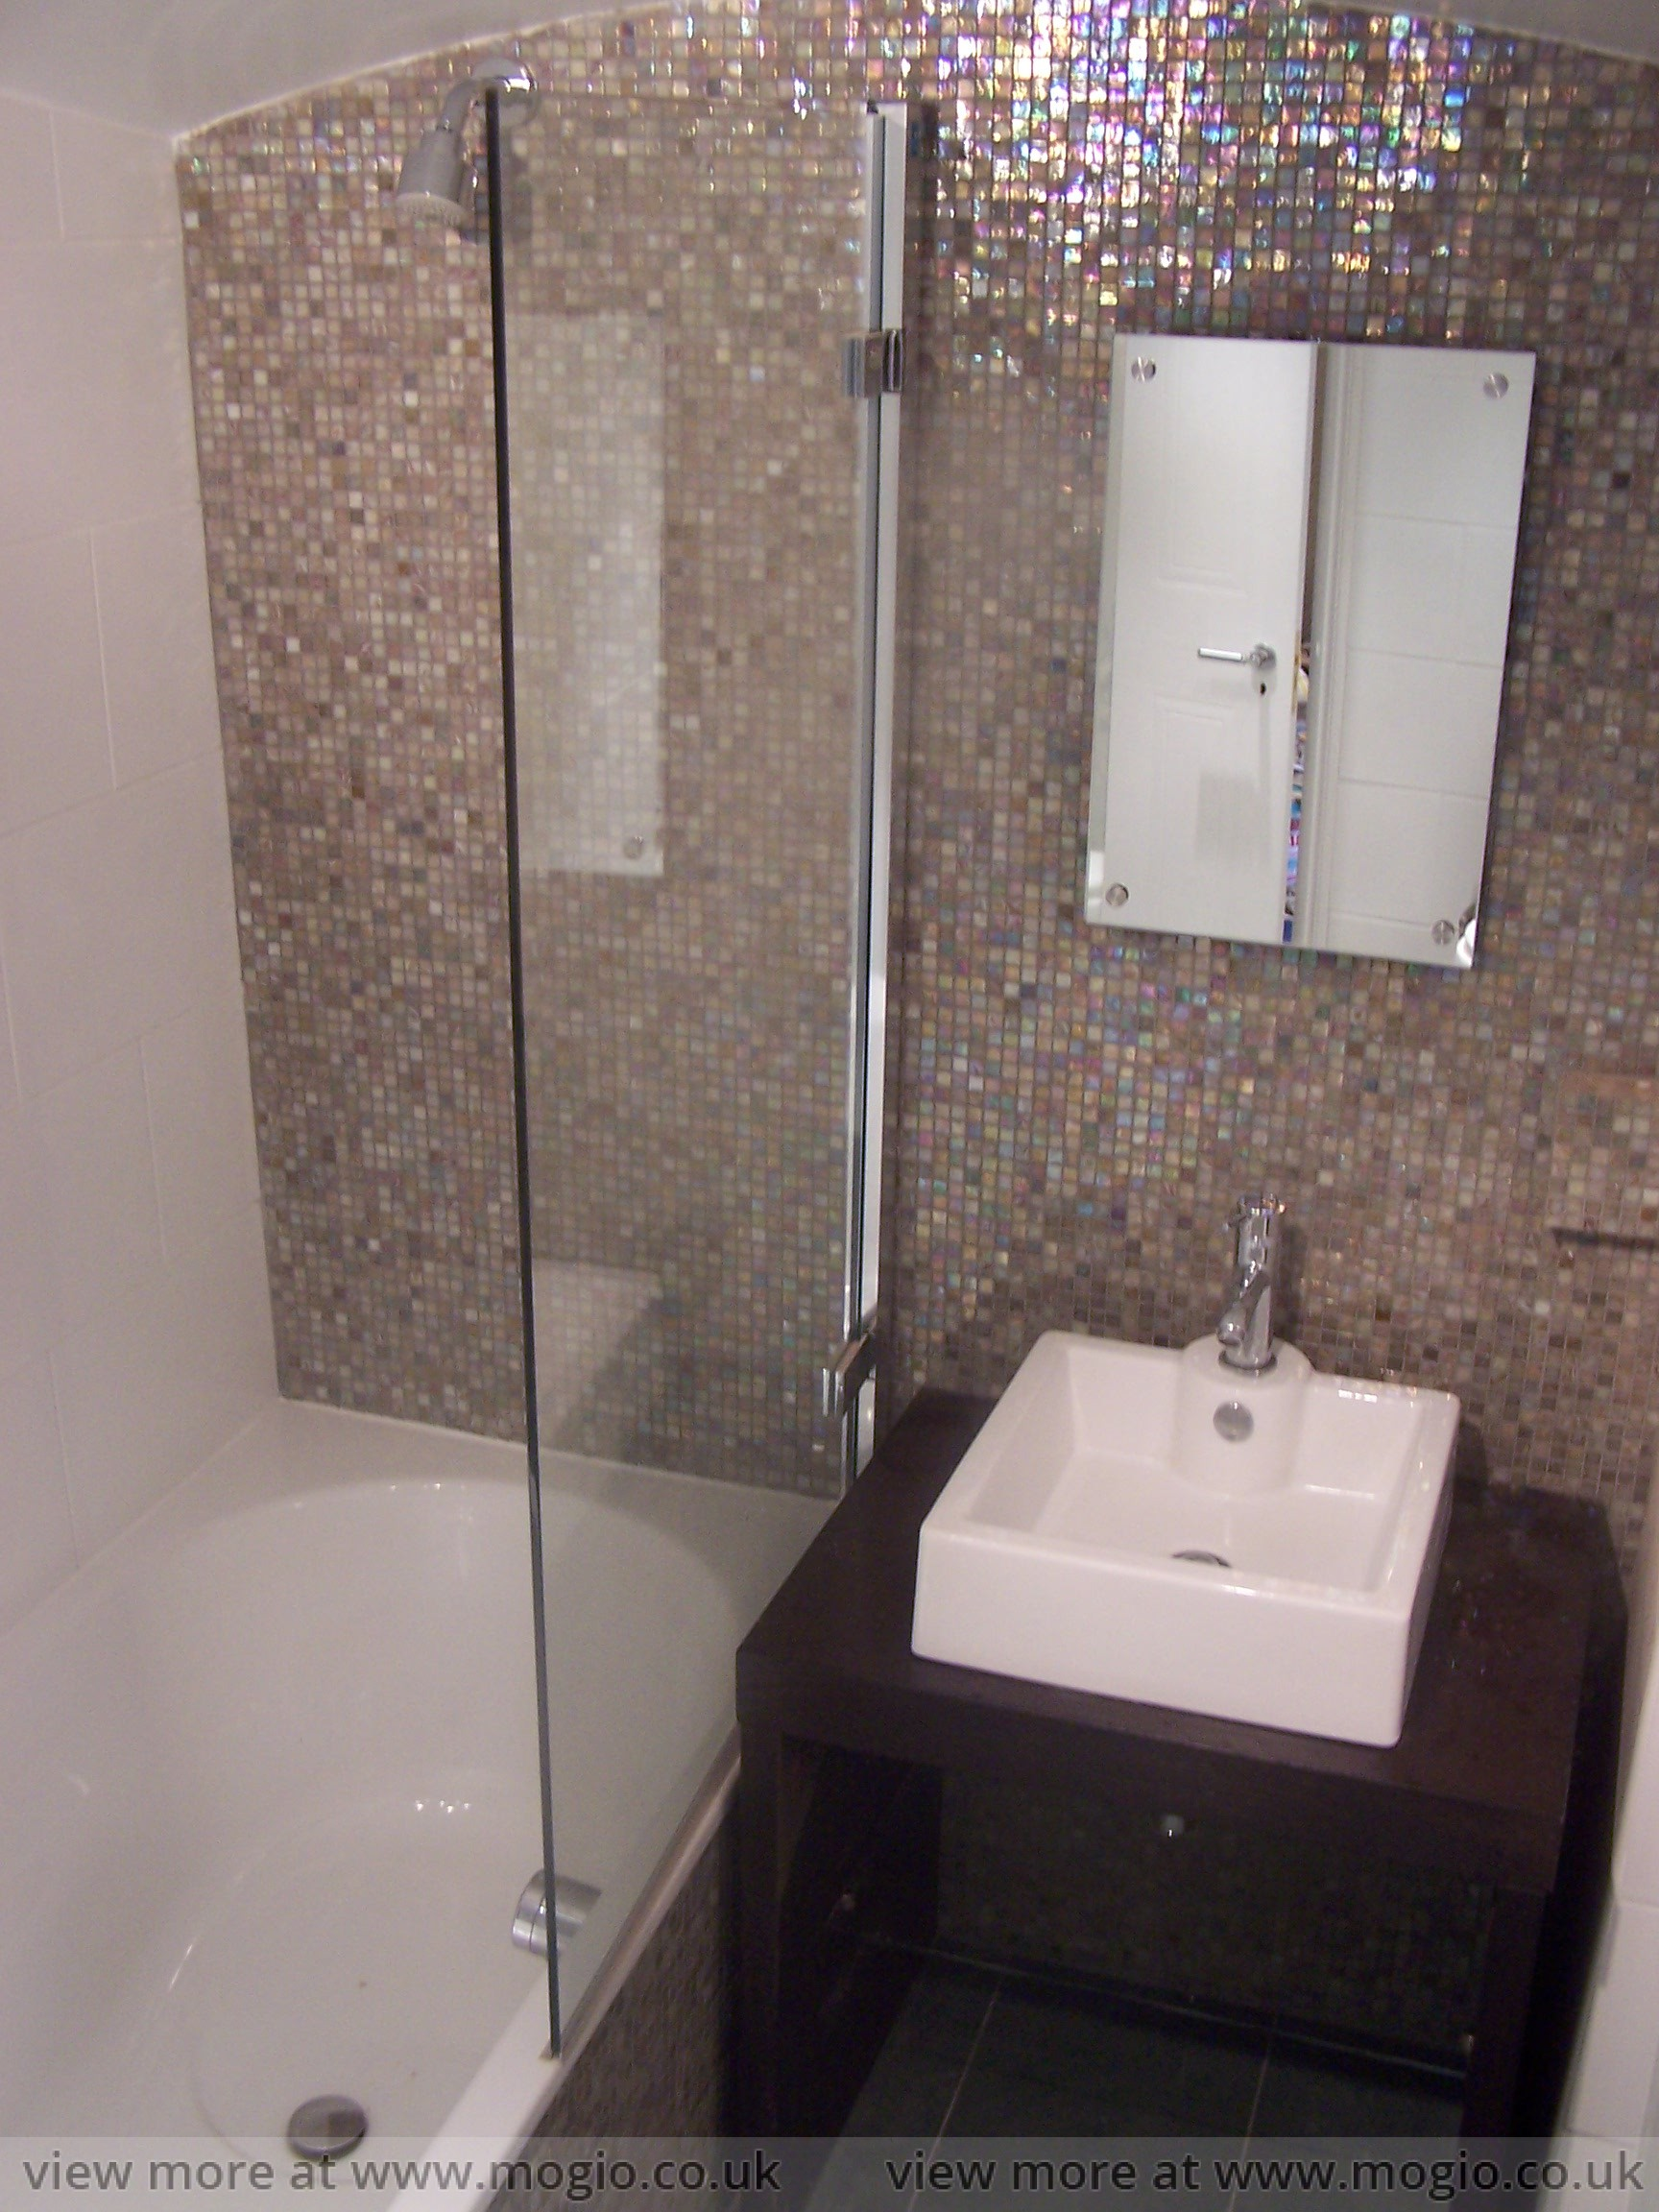 Sparkling Mosaic The Optimal Budget Wet Rooms Bathrooms Fitting